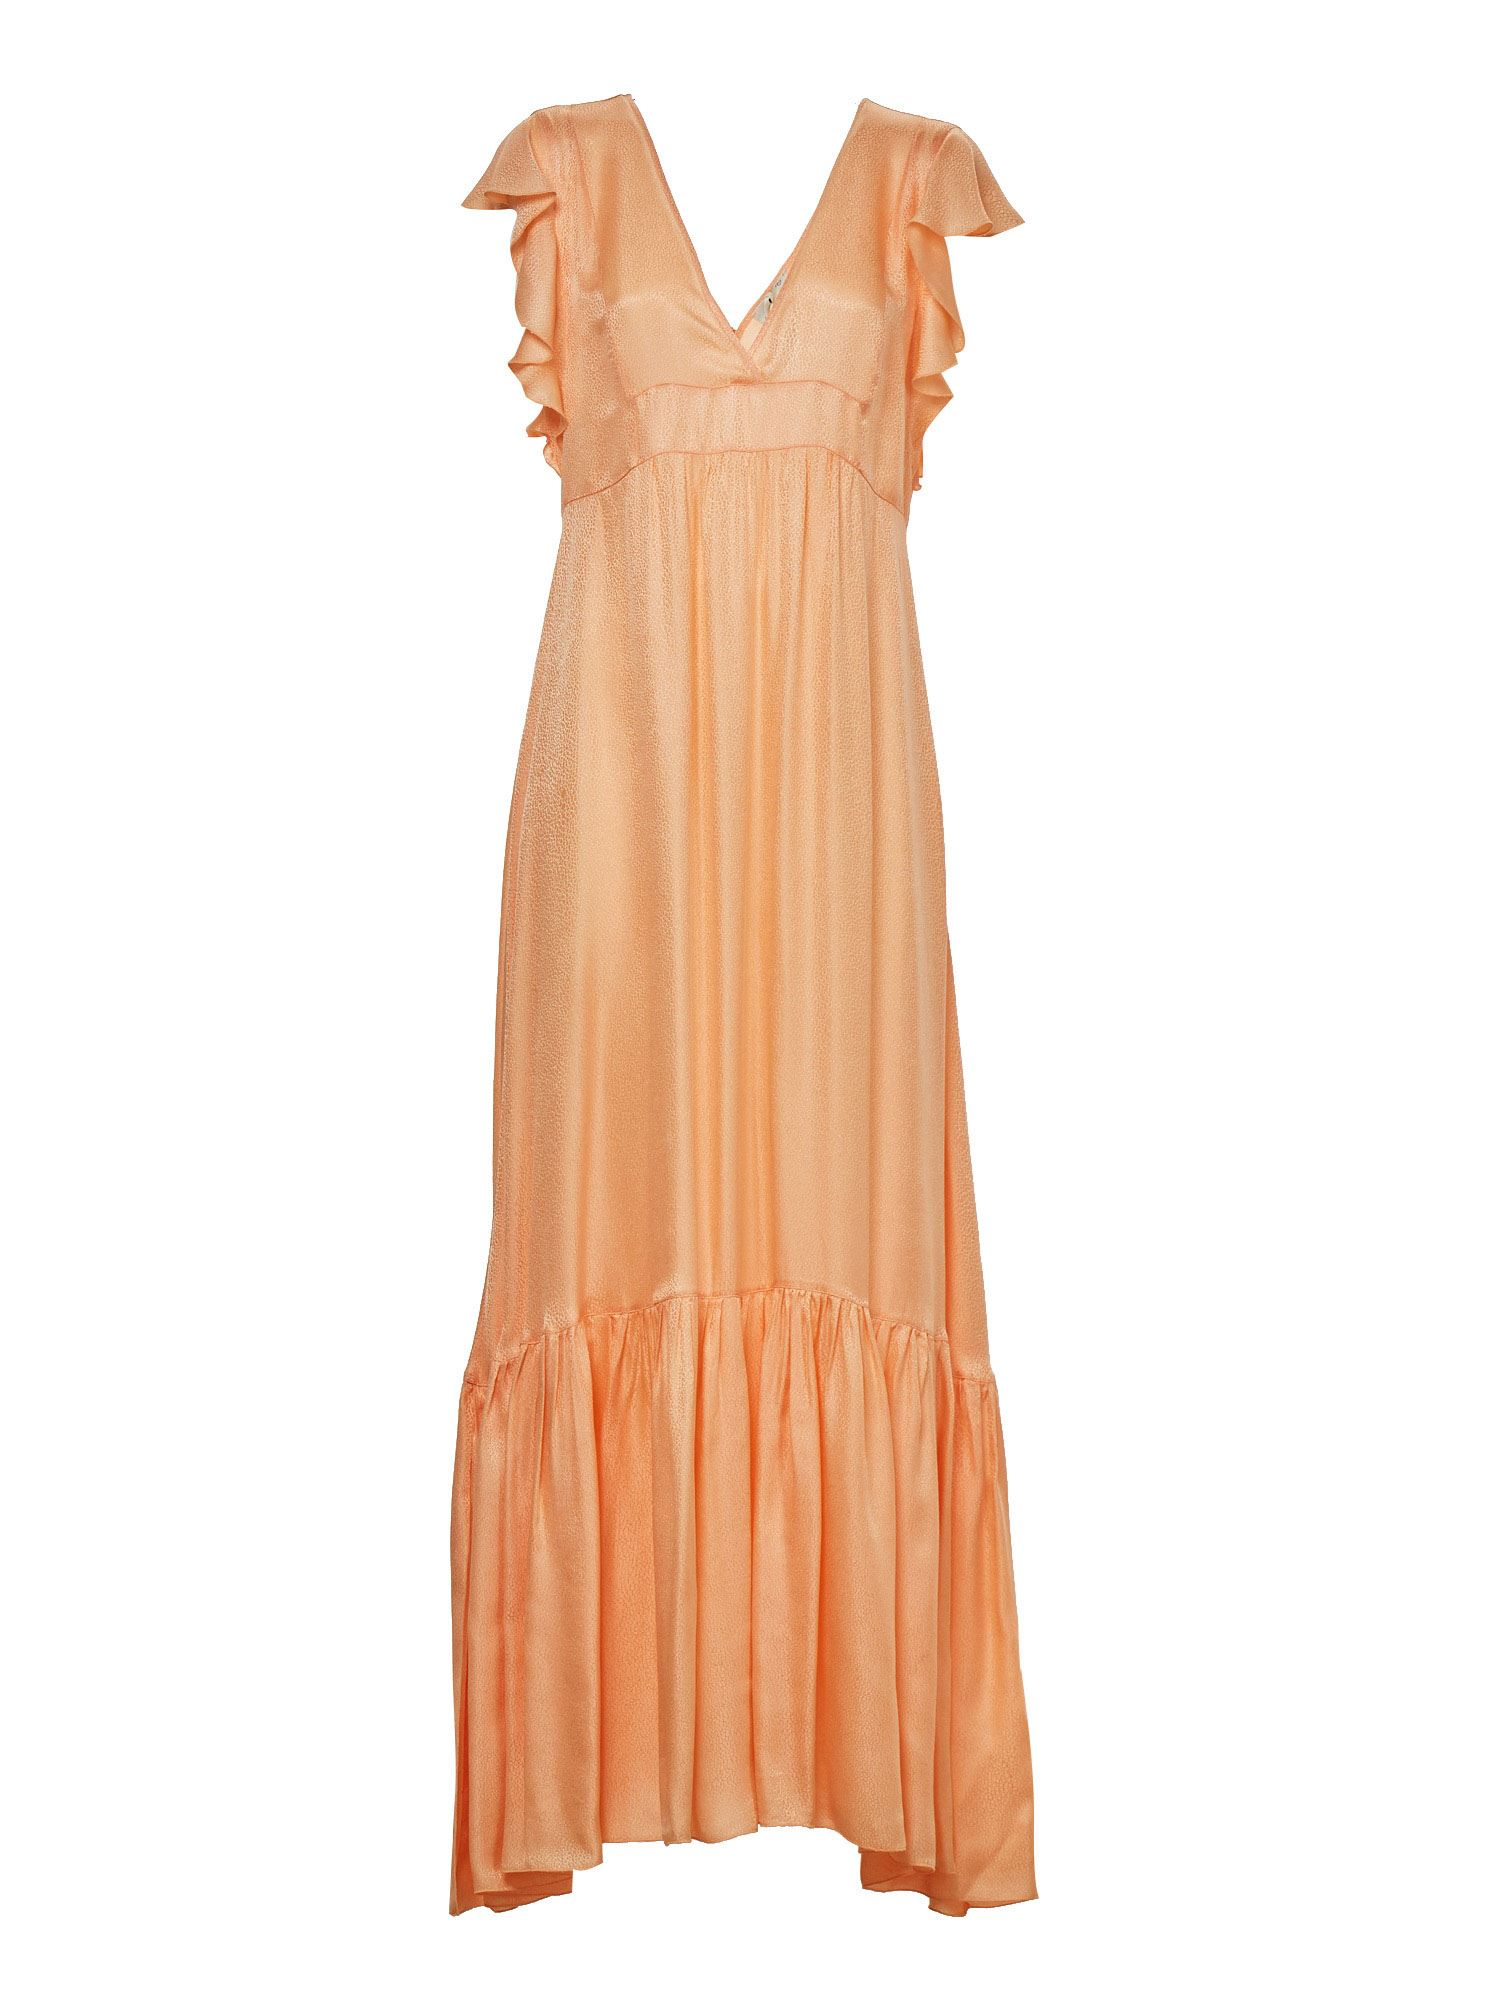 Forte Forte LONG JACQUARD FLOUNCES DRESS IN PEACH COLOR